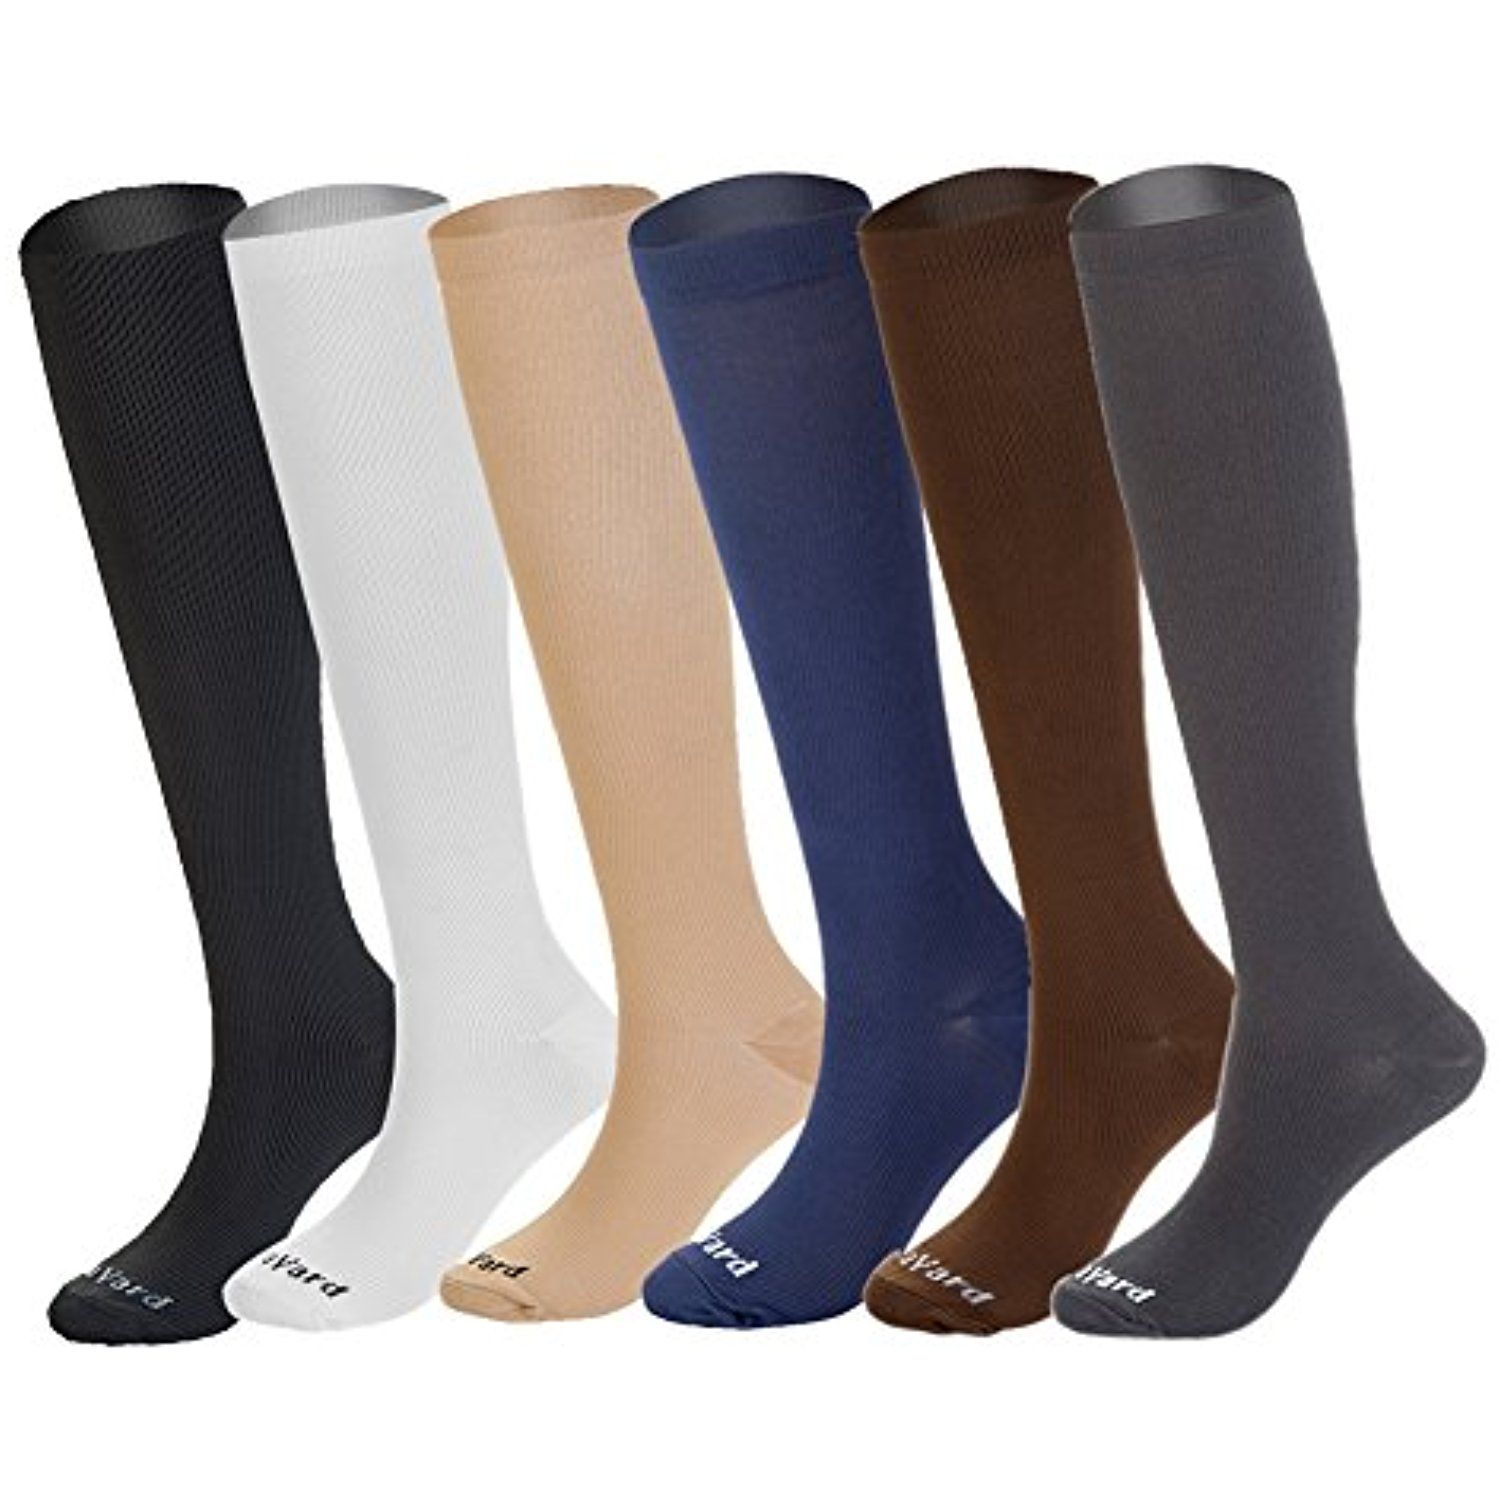 866cc40473 NovaYard 6 Pairs Knee High Graduated Compression Socks For Women and Men (15-20mmHg)  Best Medical,Running #TeamSports